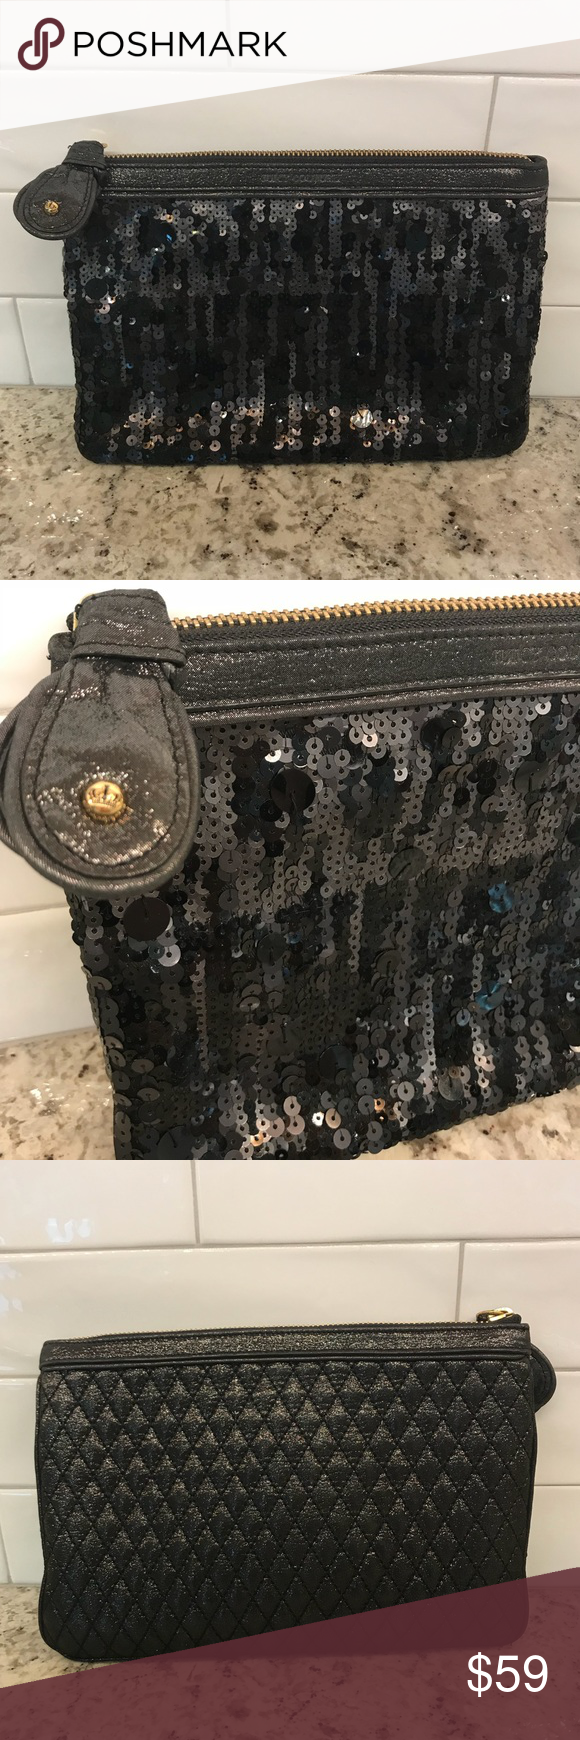 78f0fcab590c  Juicy Couture  Large Sequin Clutch  Juicy Couture  Large Sequin Clutch.  NWOT Never used! Perfect for Holiday parties. Juicy Couture Bags Clutches    ...